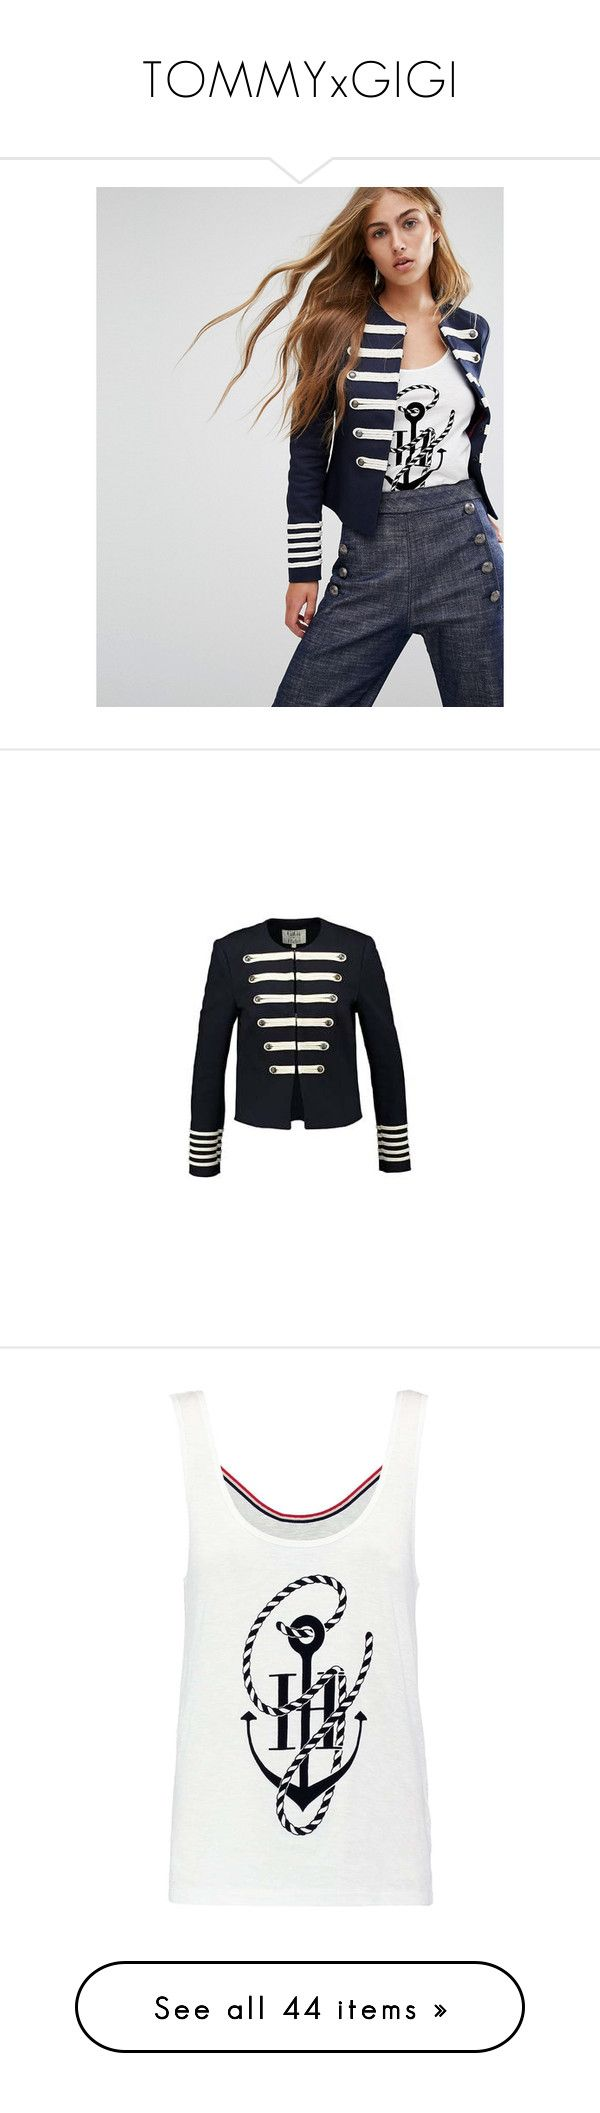 """""""TOMMYxGIGI"""" by polyandrea ❤ liked on Polyvore featuring tommyxgigi, outerwear, jackets, navy, crew jackets, military jacket, cotton field jacket, army jackets, button jacket and tops"""